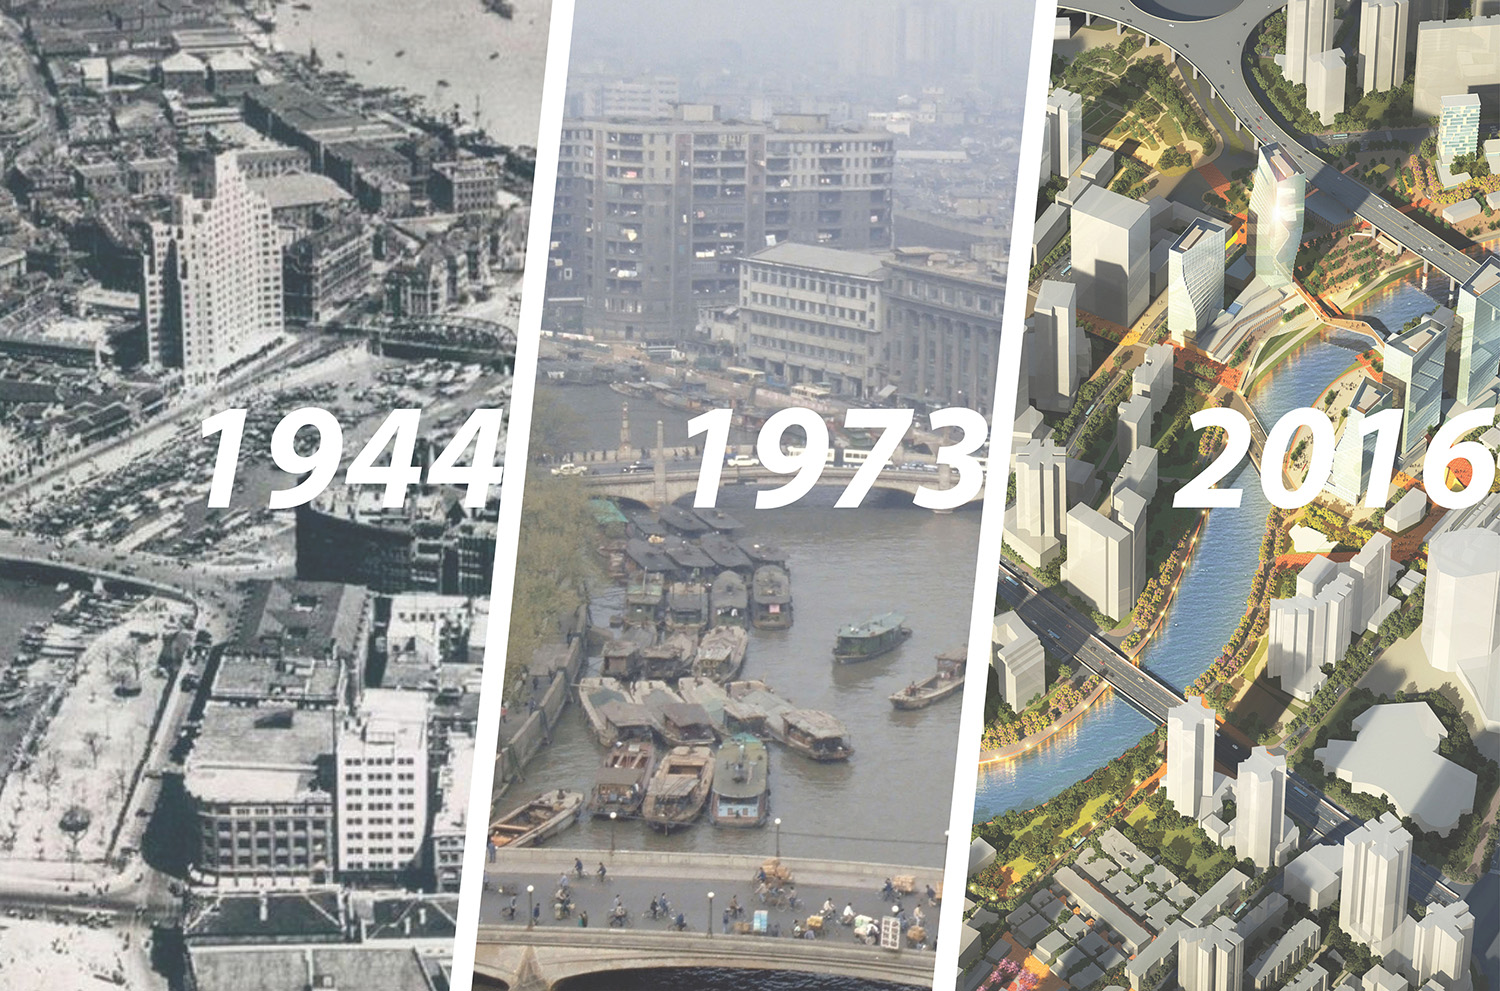 Economic Growth and Environmental Degradation: Suzhou Creek has witnessed the genesis of Shanghai's industrialization, suffered from severe pollution, and is poised to be celebrated as the city's newest pu